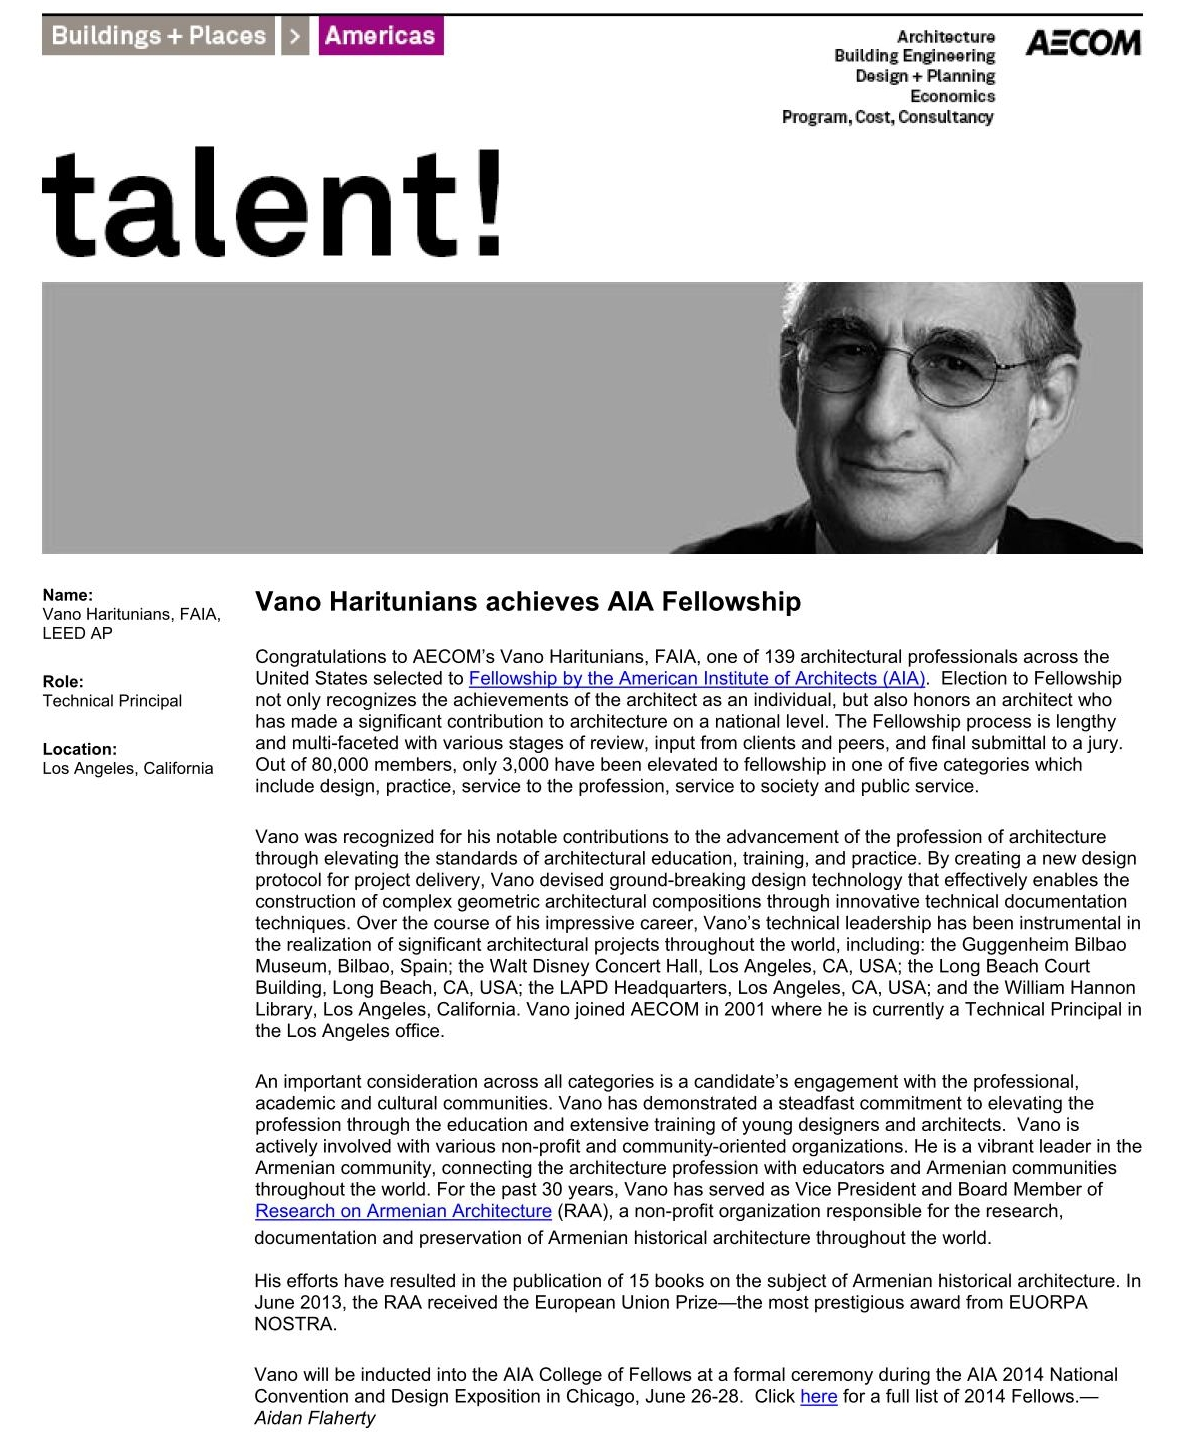 Talent announcement_architect